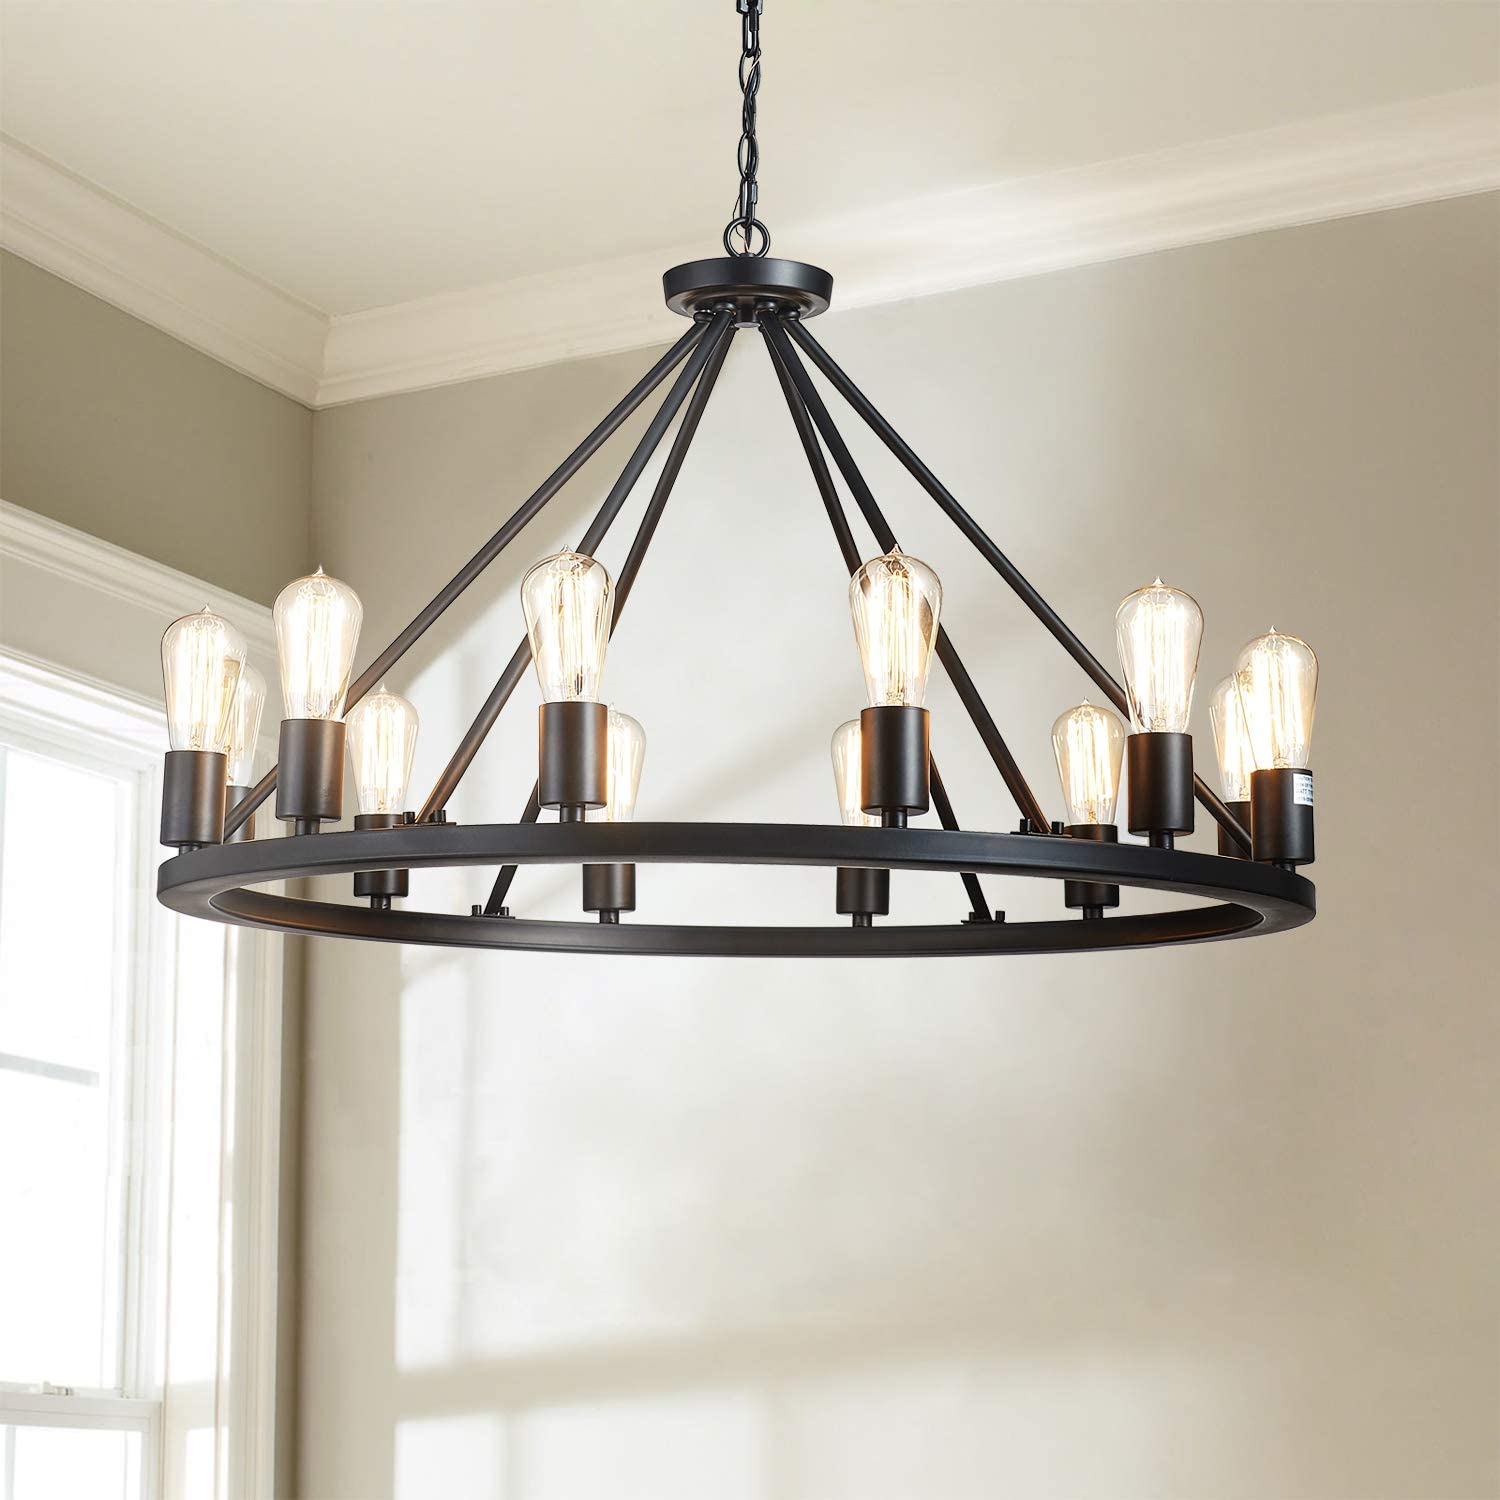 """Saint Mossi Antique Painted Metal Chandelier Lighting Black Finish 12 Lights Chandelier, Diam 32"""" inch Pendant Chandelier Island Chandeleir Lighting Rustic Vintage Farmhouse Industrial Country Style"""